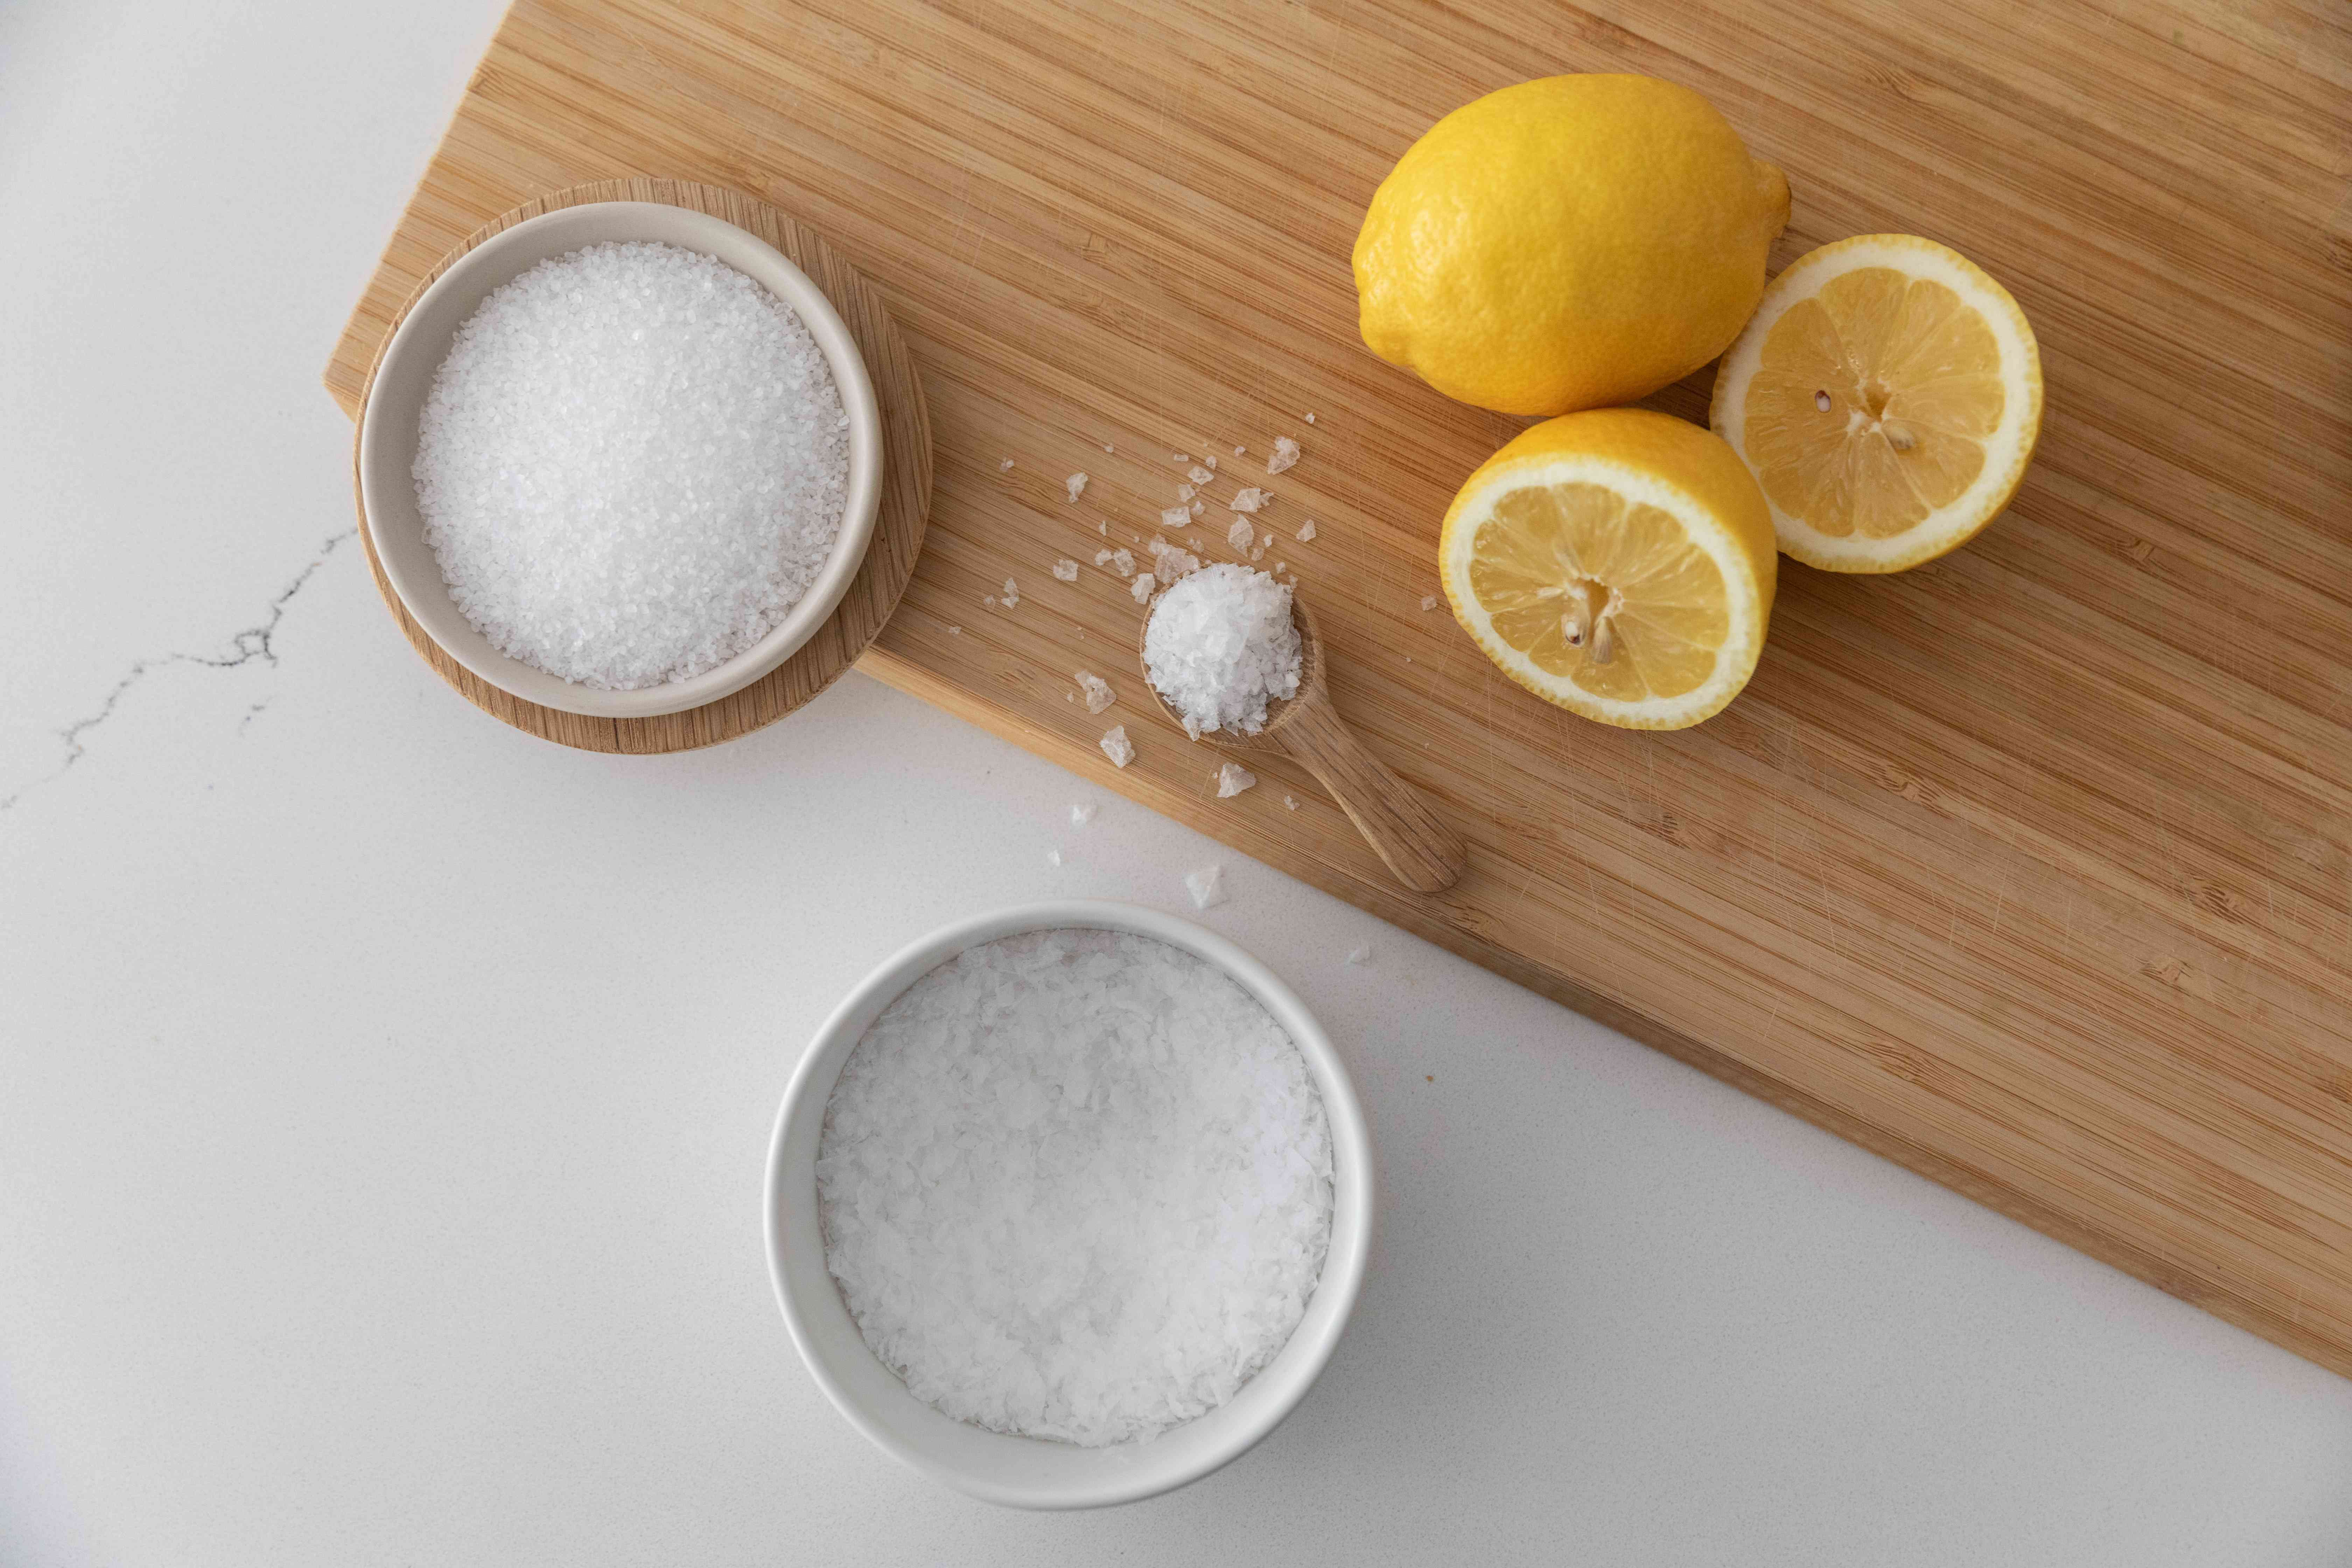 Cutting board with cut lemons and bowls of salt with spoon full of salt